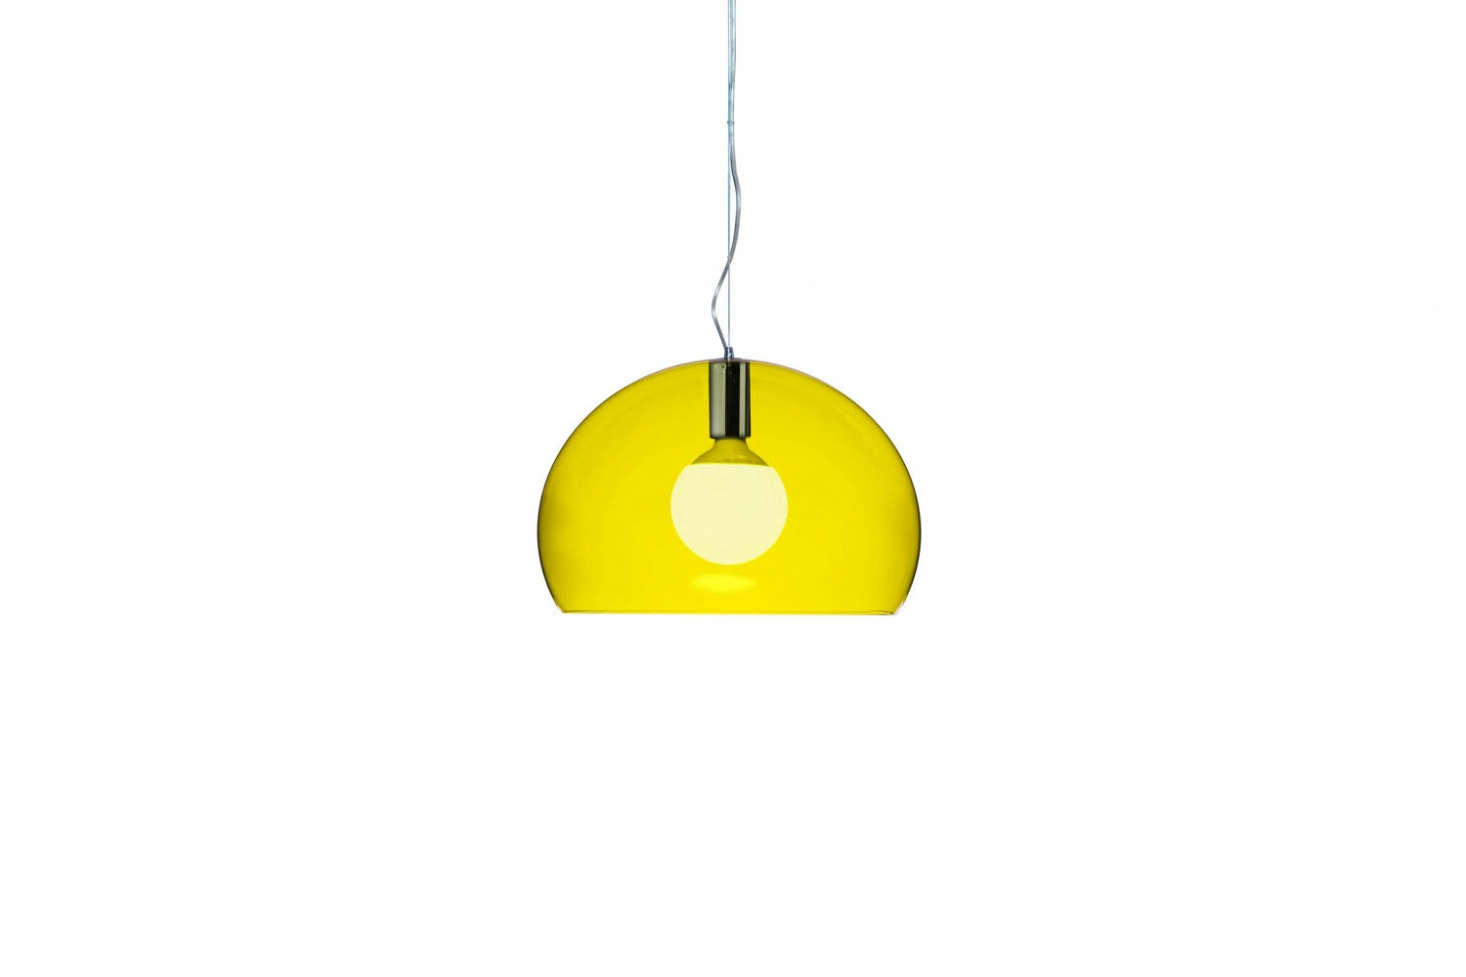 The Small Fl/y Suspension Lamp is the look of glass (methacrylate) for less and comes in 13 colors—shown in Transparent Yellow—for $267.75 at Hive. The full-size Fl/y Suspension Lamp is $301.75 also at Hive.